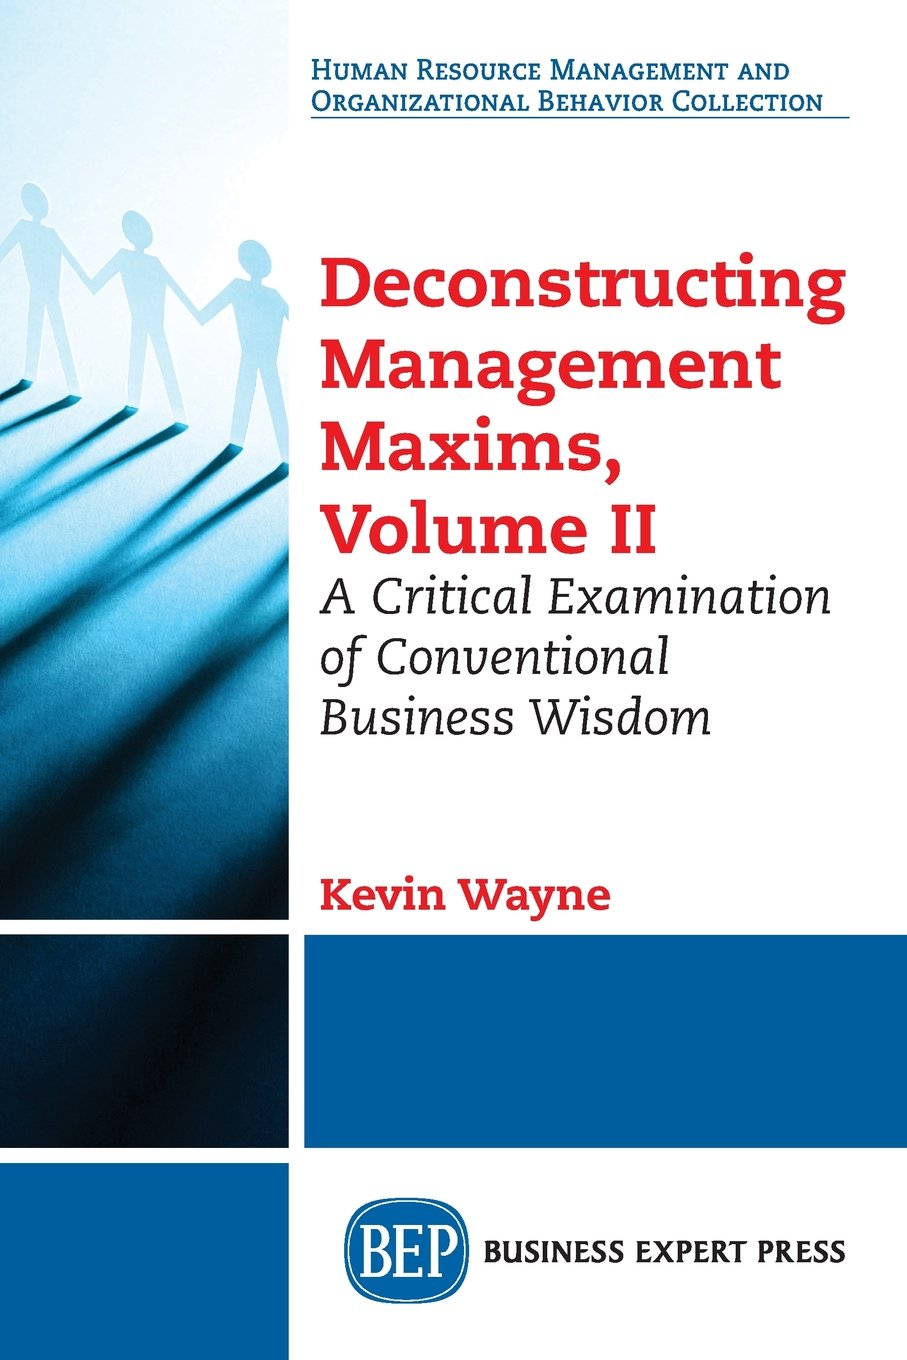 Download Deconstructing Management Maxims, Volume II: A Critical Examination of Conventional Business Wisdom PDF